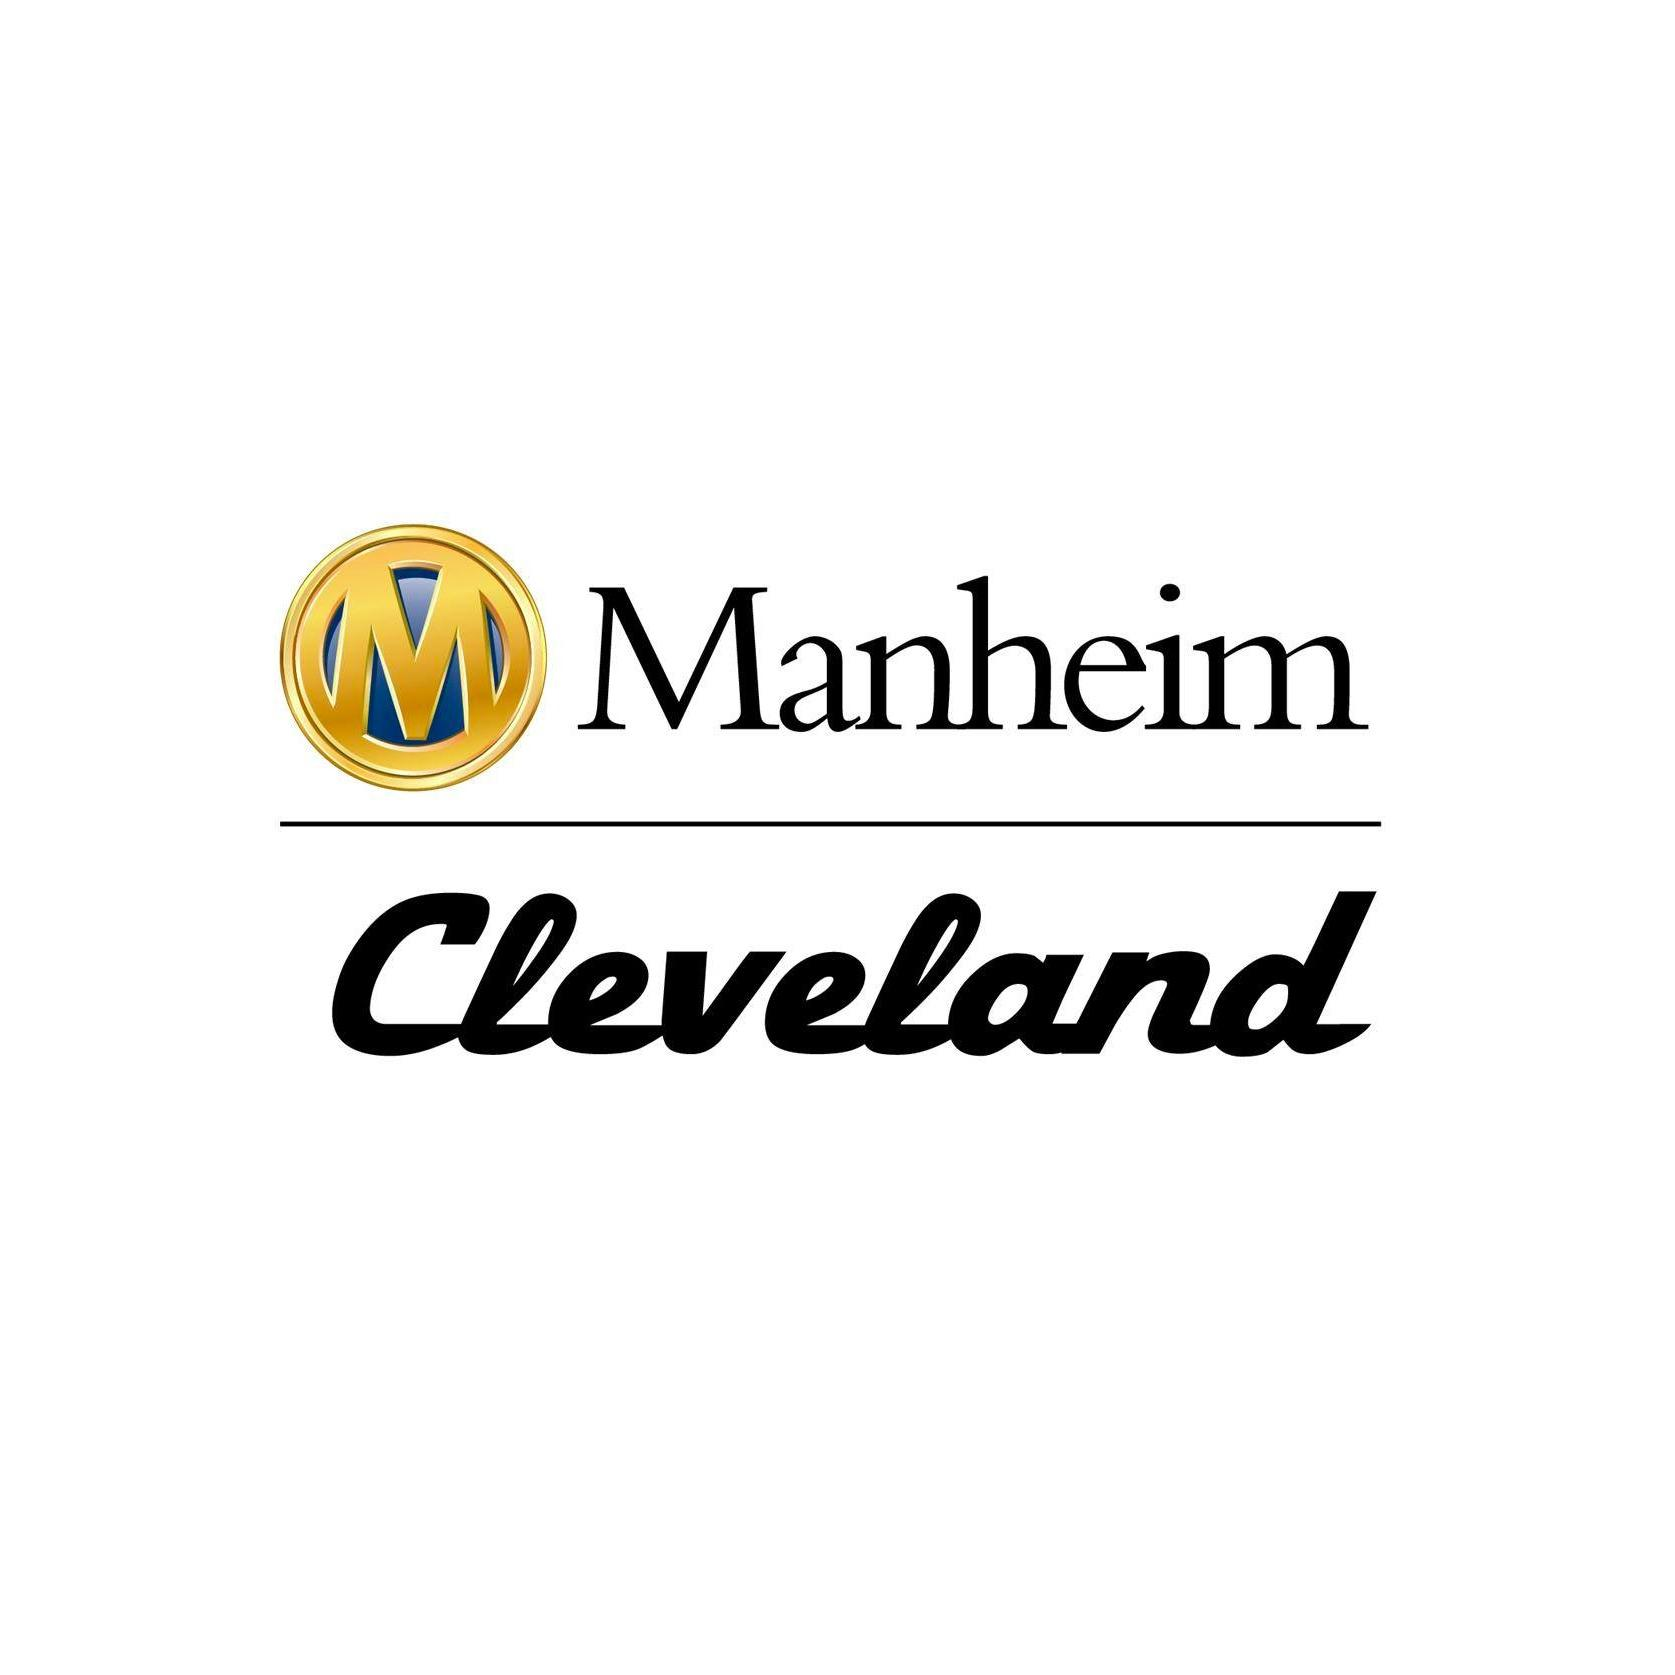 Cleveland coupon matchups